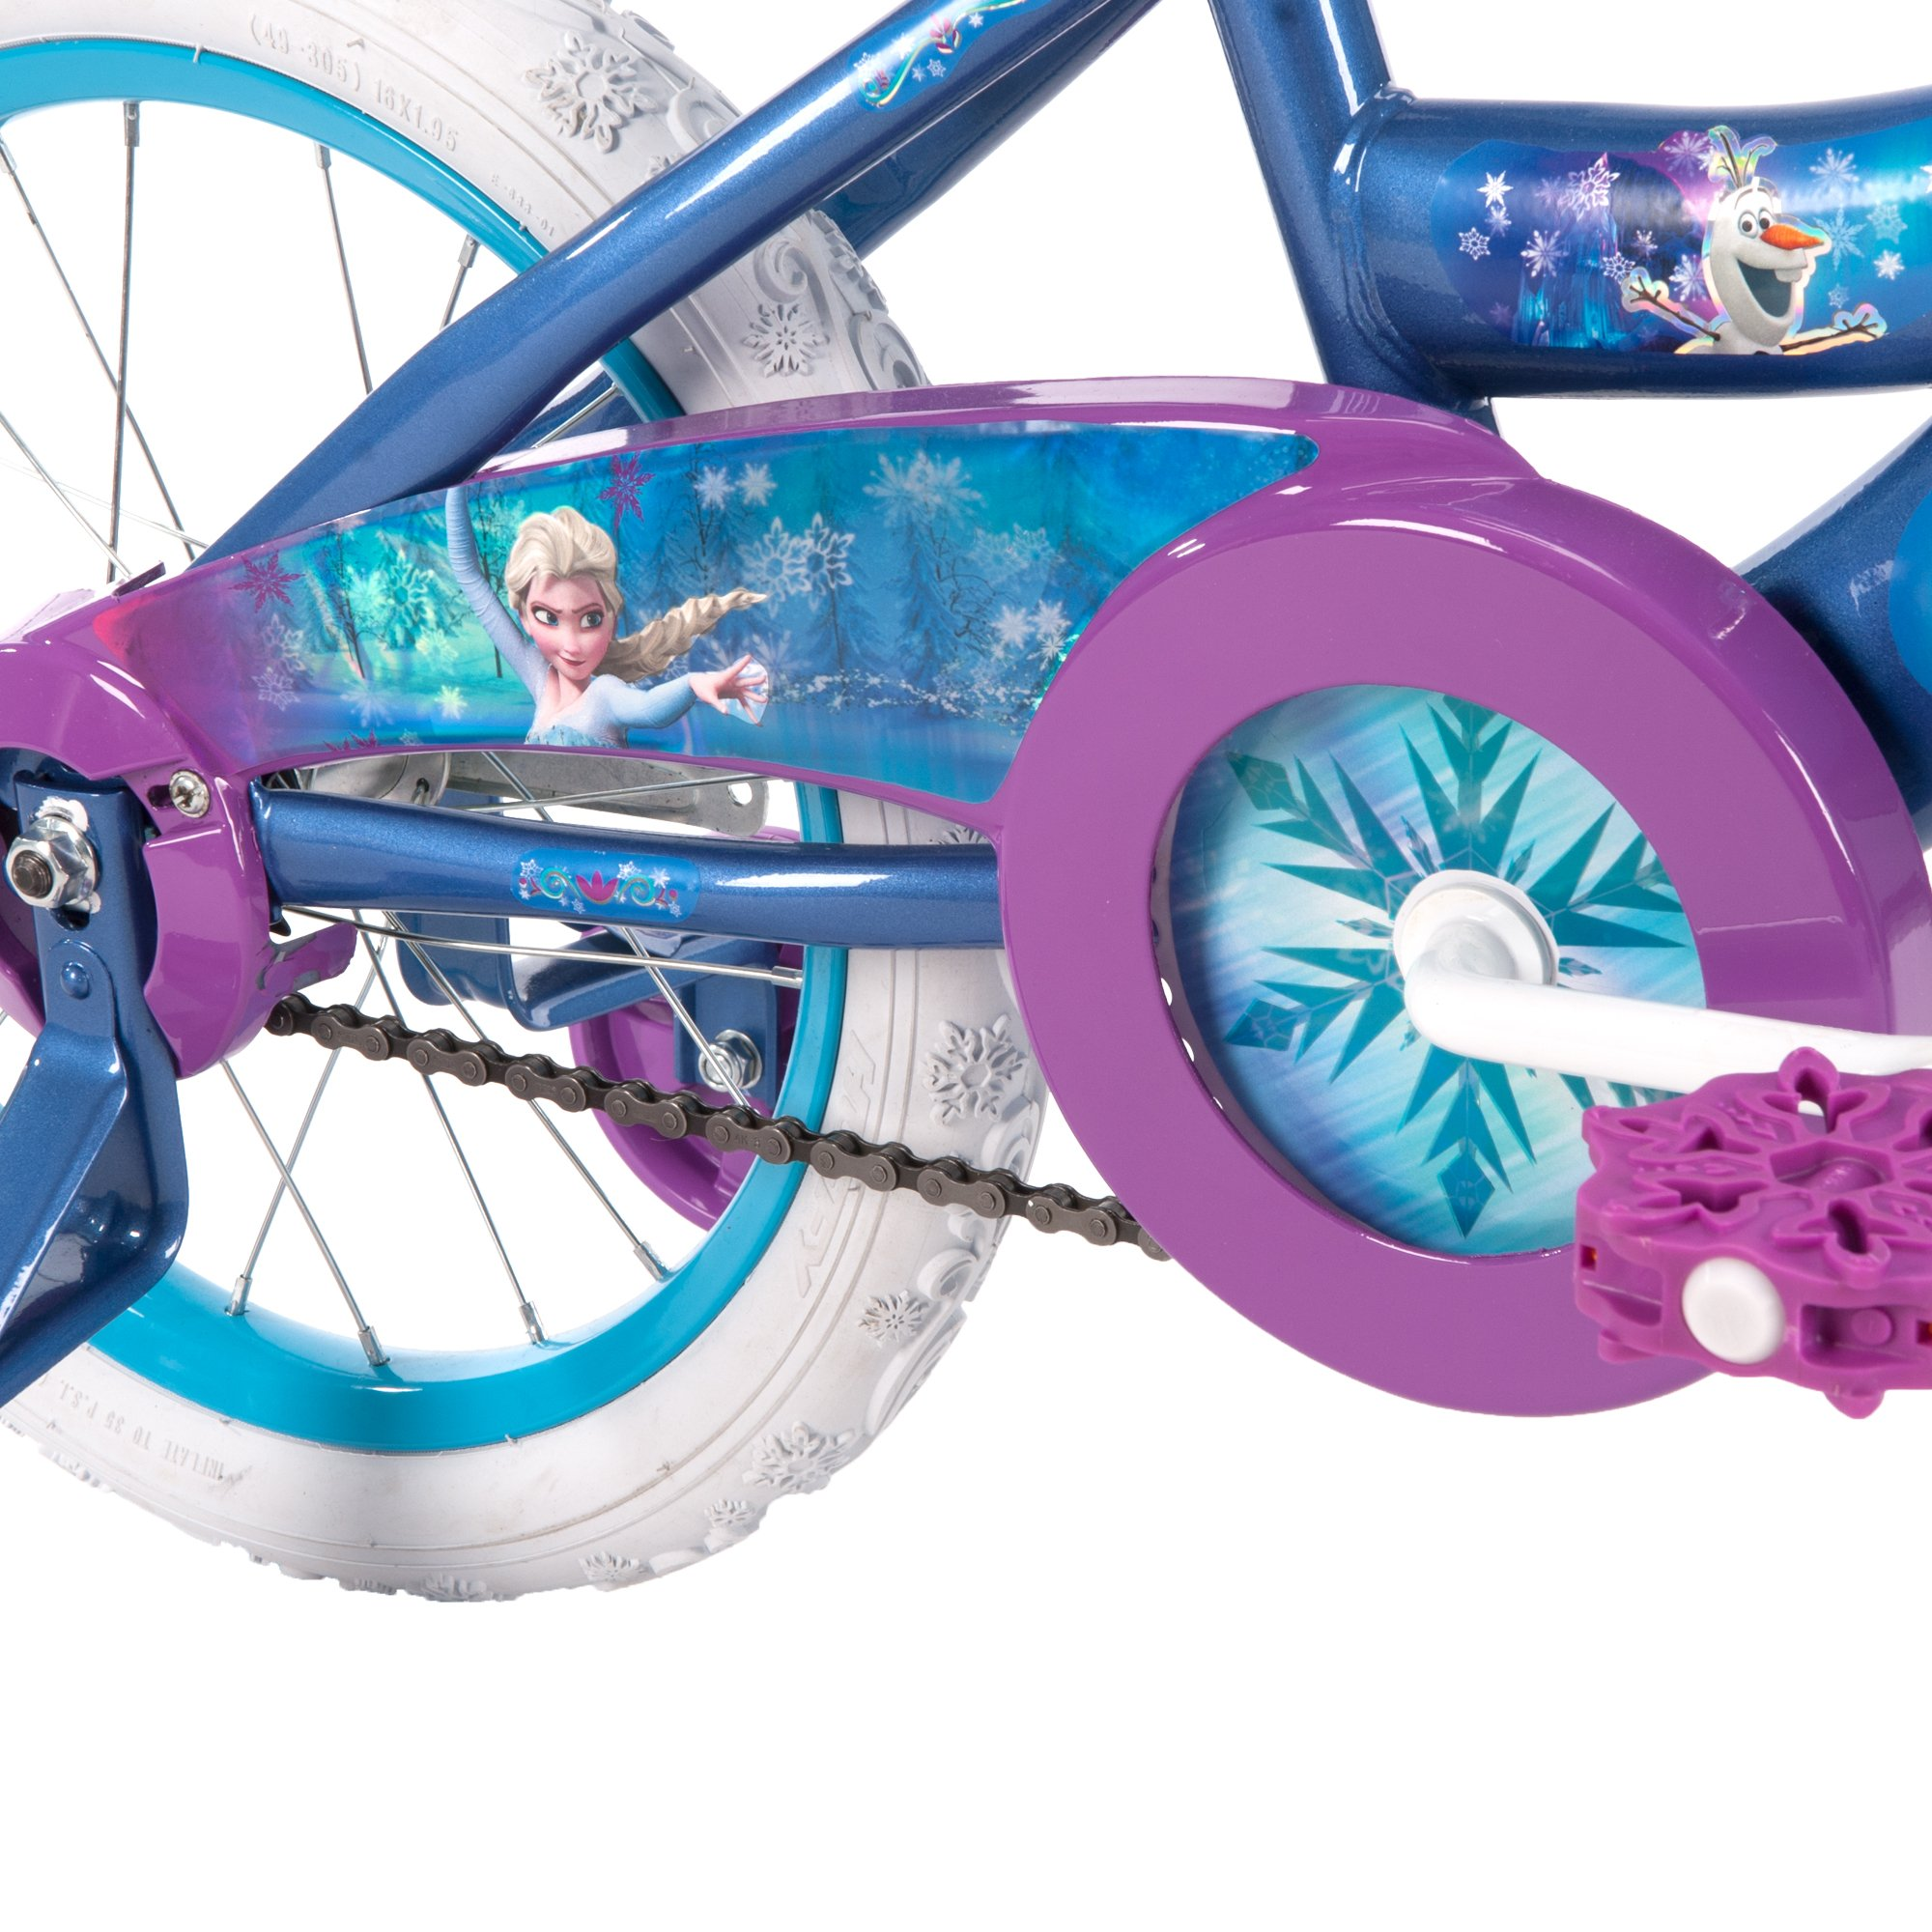 16'' Disney Frozen Bike by Huffy, Ages 4-6, Height 42-48'' by Huffy (Image #2)